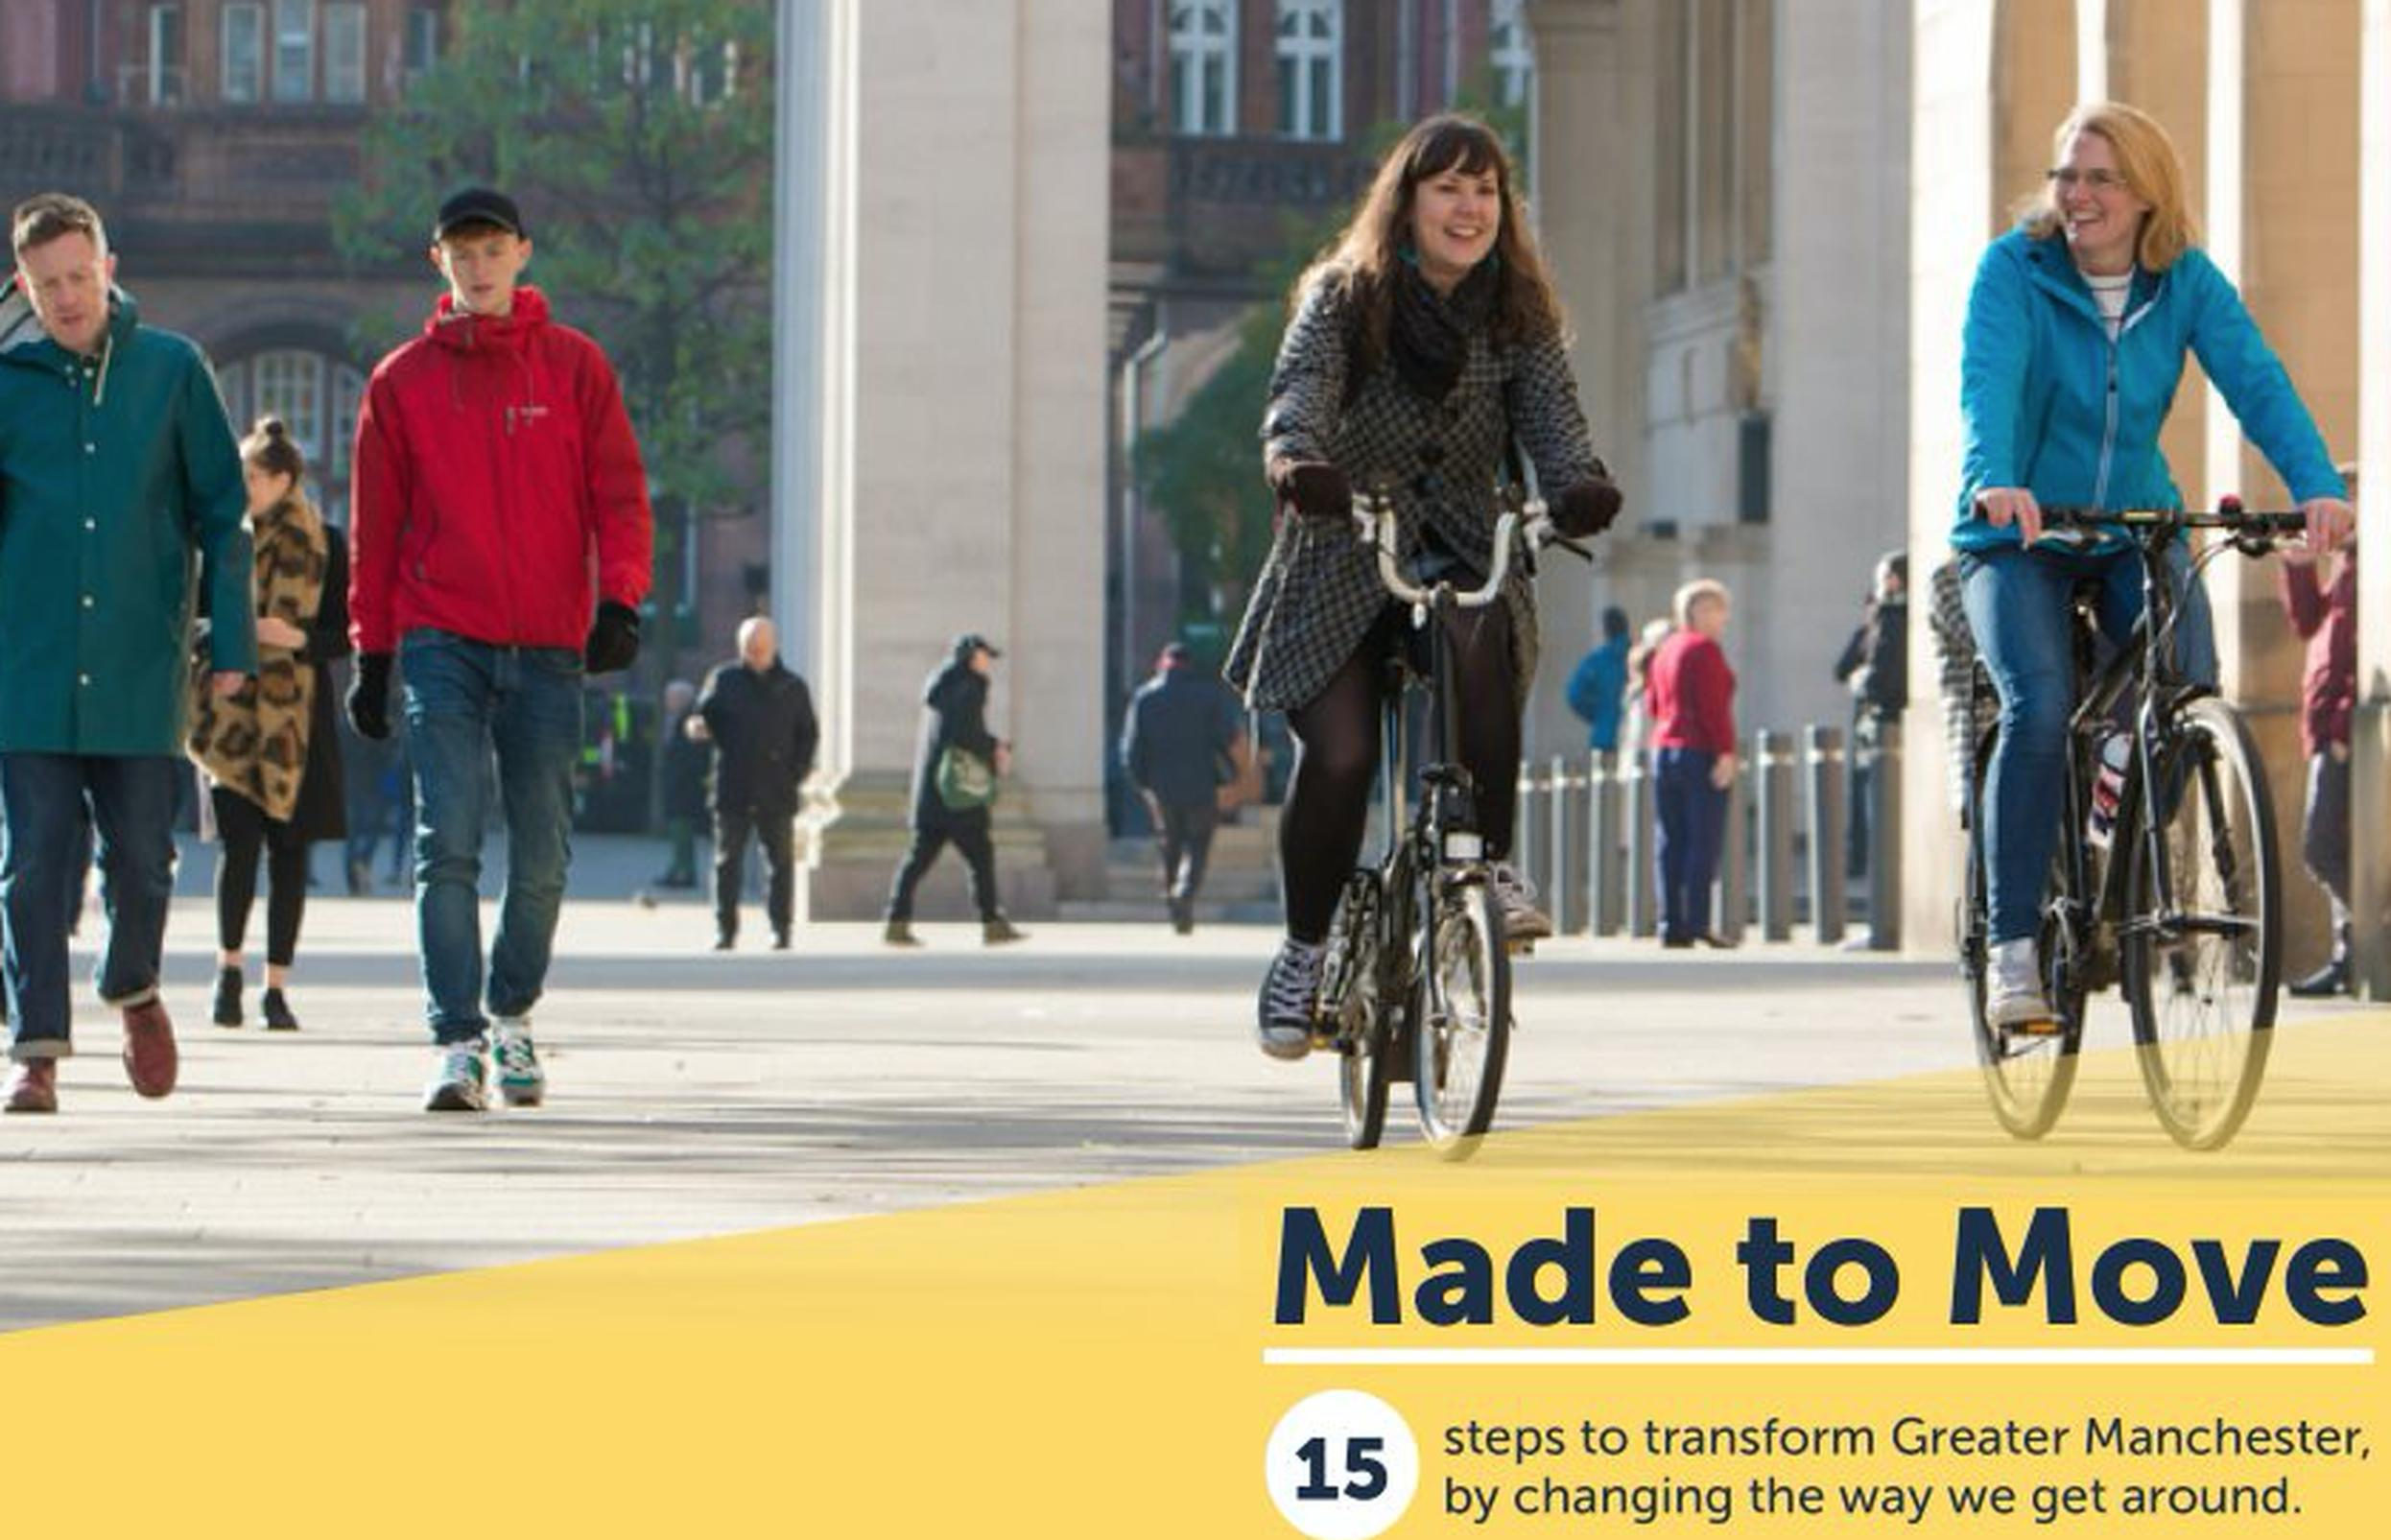 Made to Move is the first report of Greater Manchester's Cycling and Walking Commissioner, Olympic gold medal winner Chris Boardman